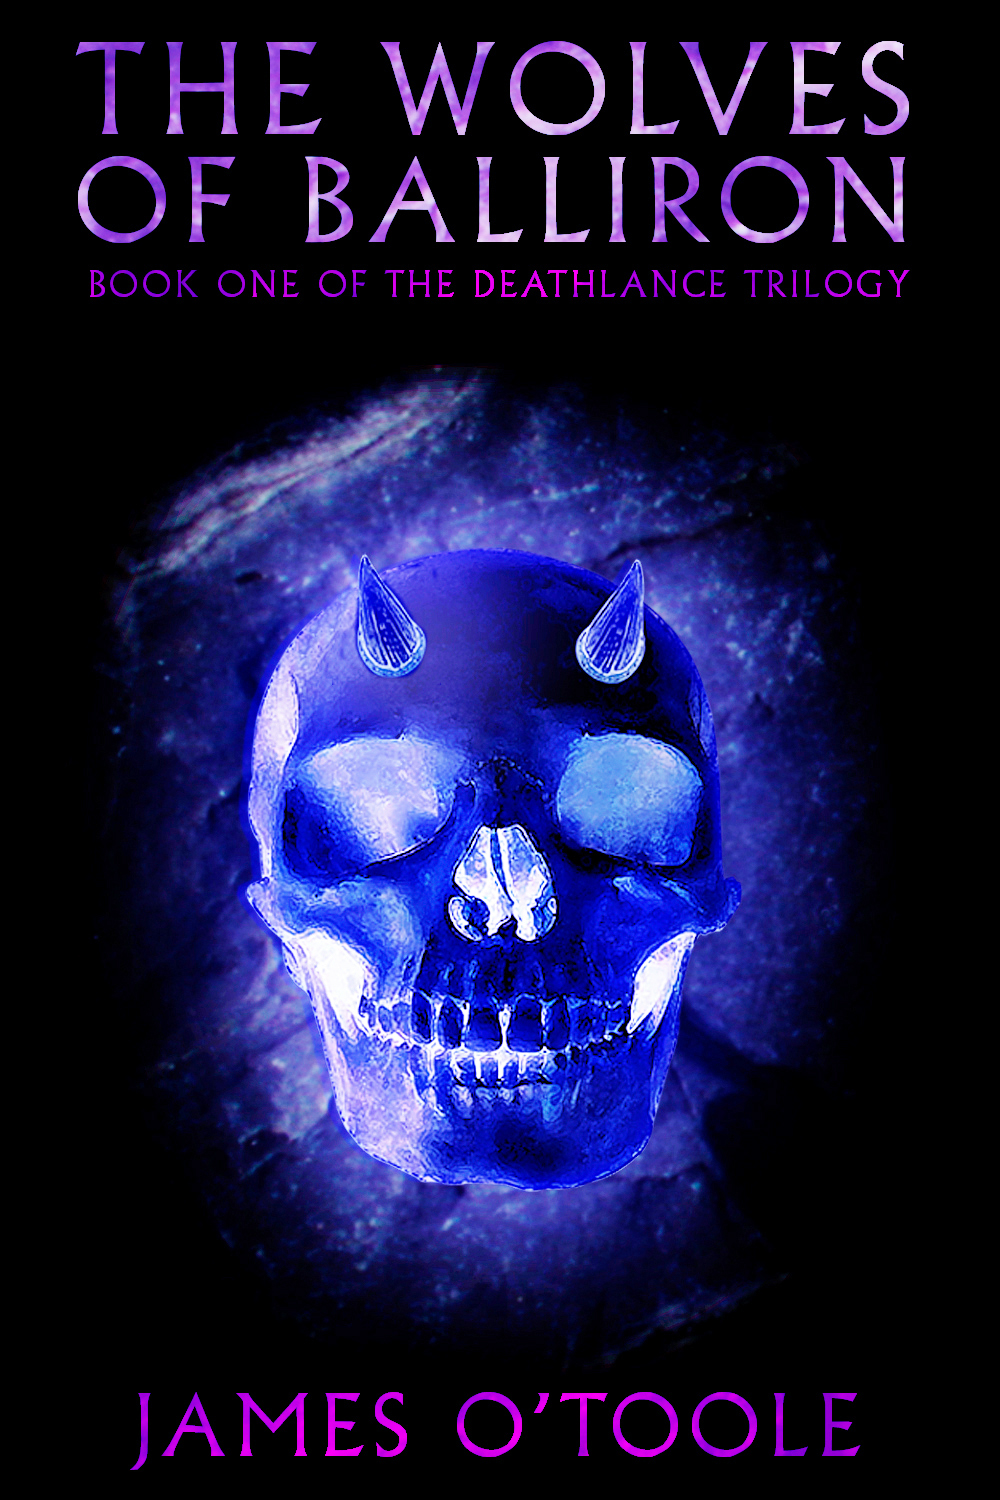 The Wolves of Balliron Book Cover